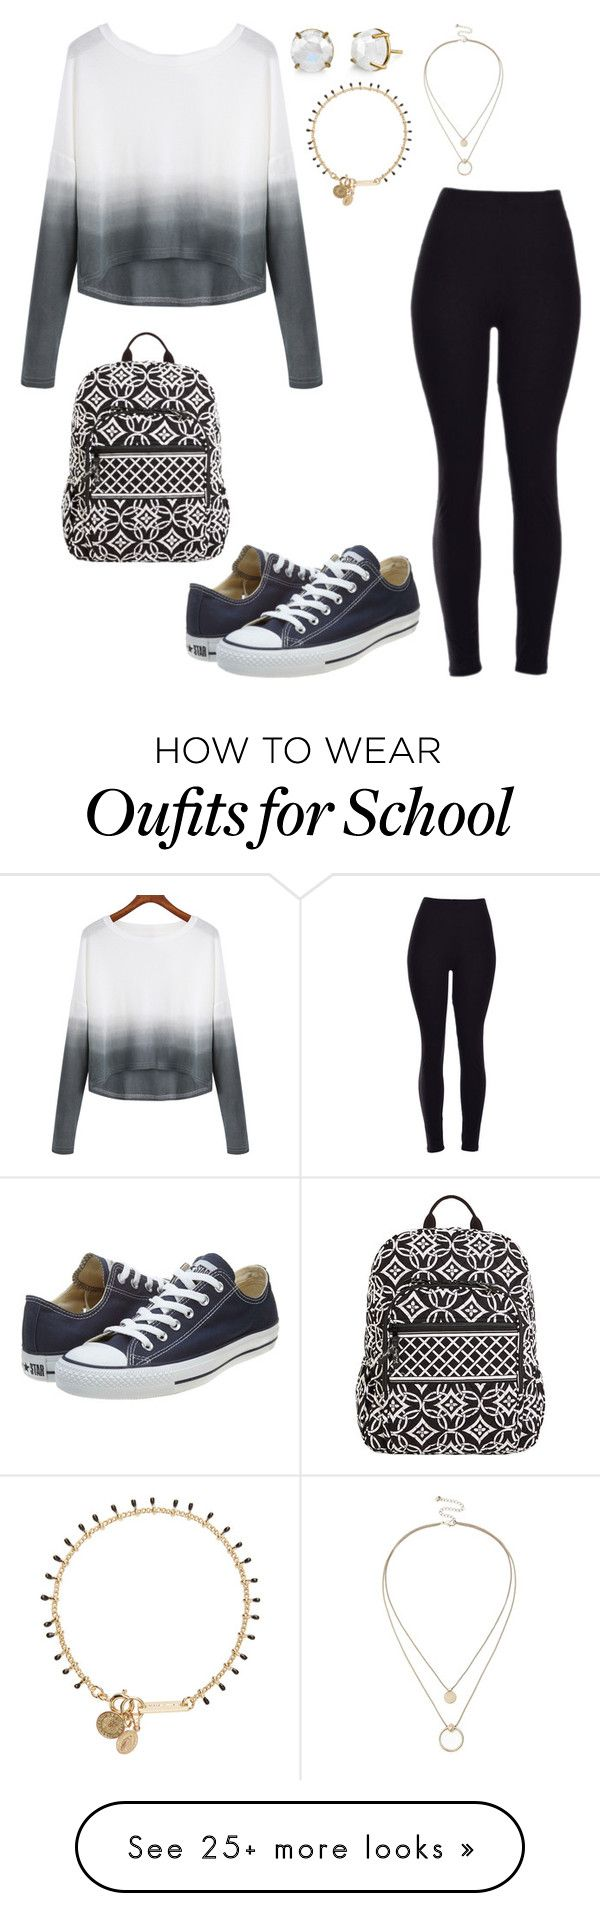 """""""School day:Wednesday"""" by sweet-brownsuga on Polyvore featuring Converse, Sole Society, Isabel Marant, Vera Bradley, women's clothing, women, female, woman, misses and juniors"""